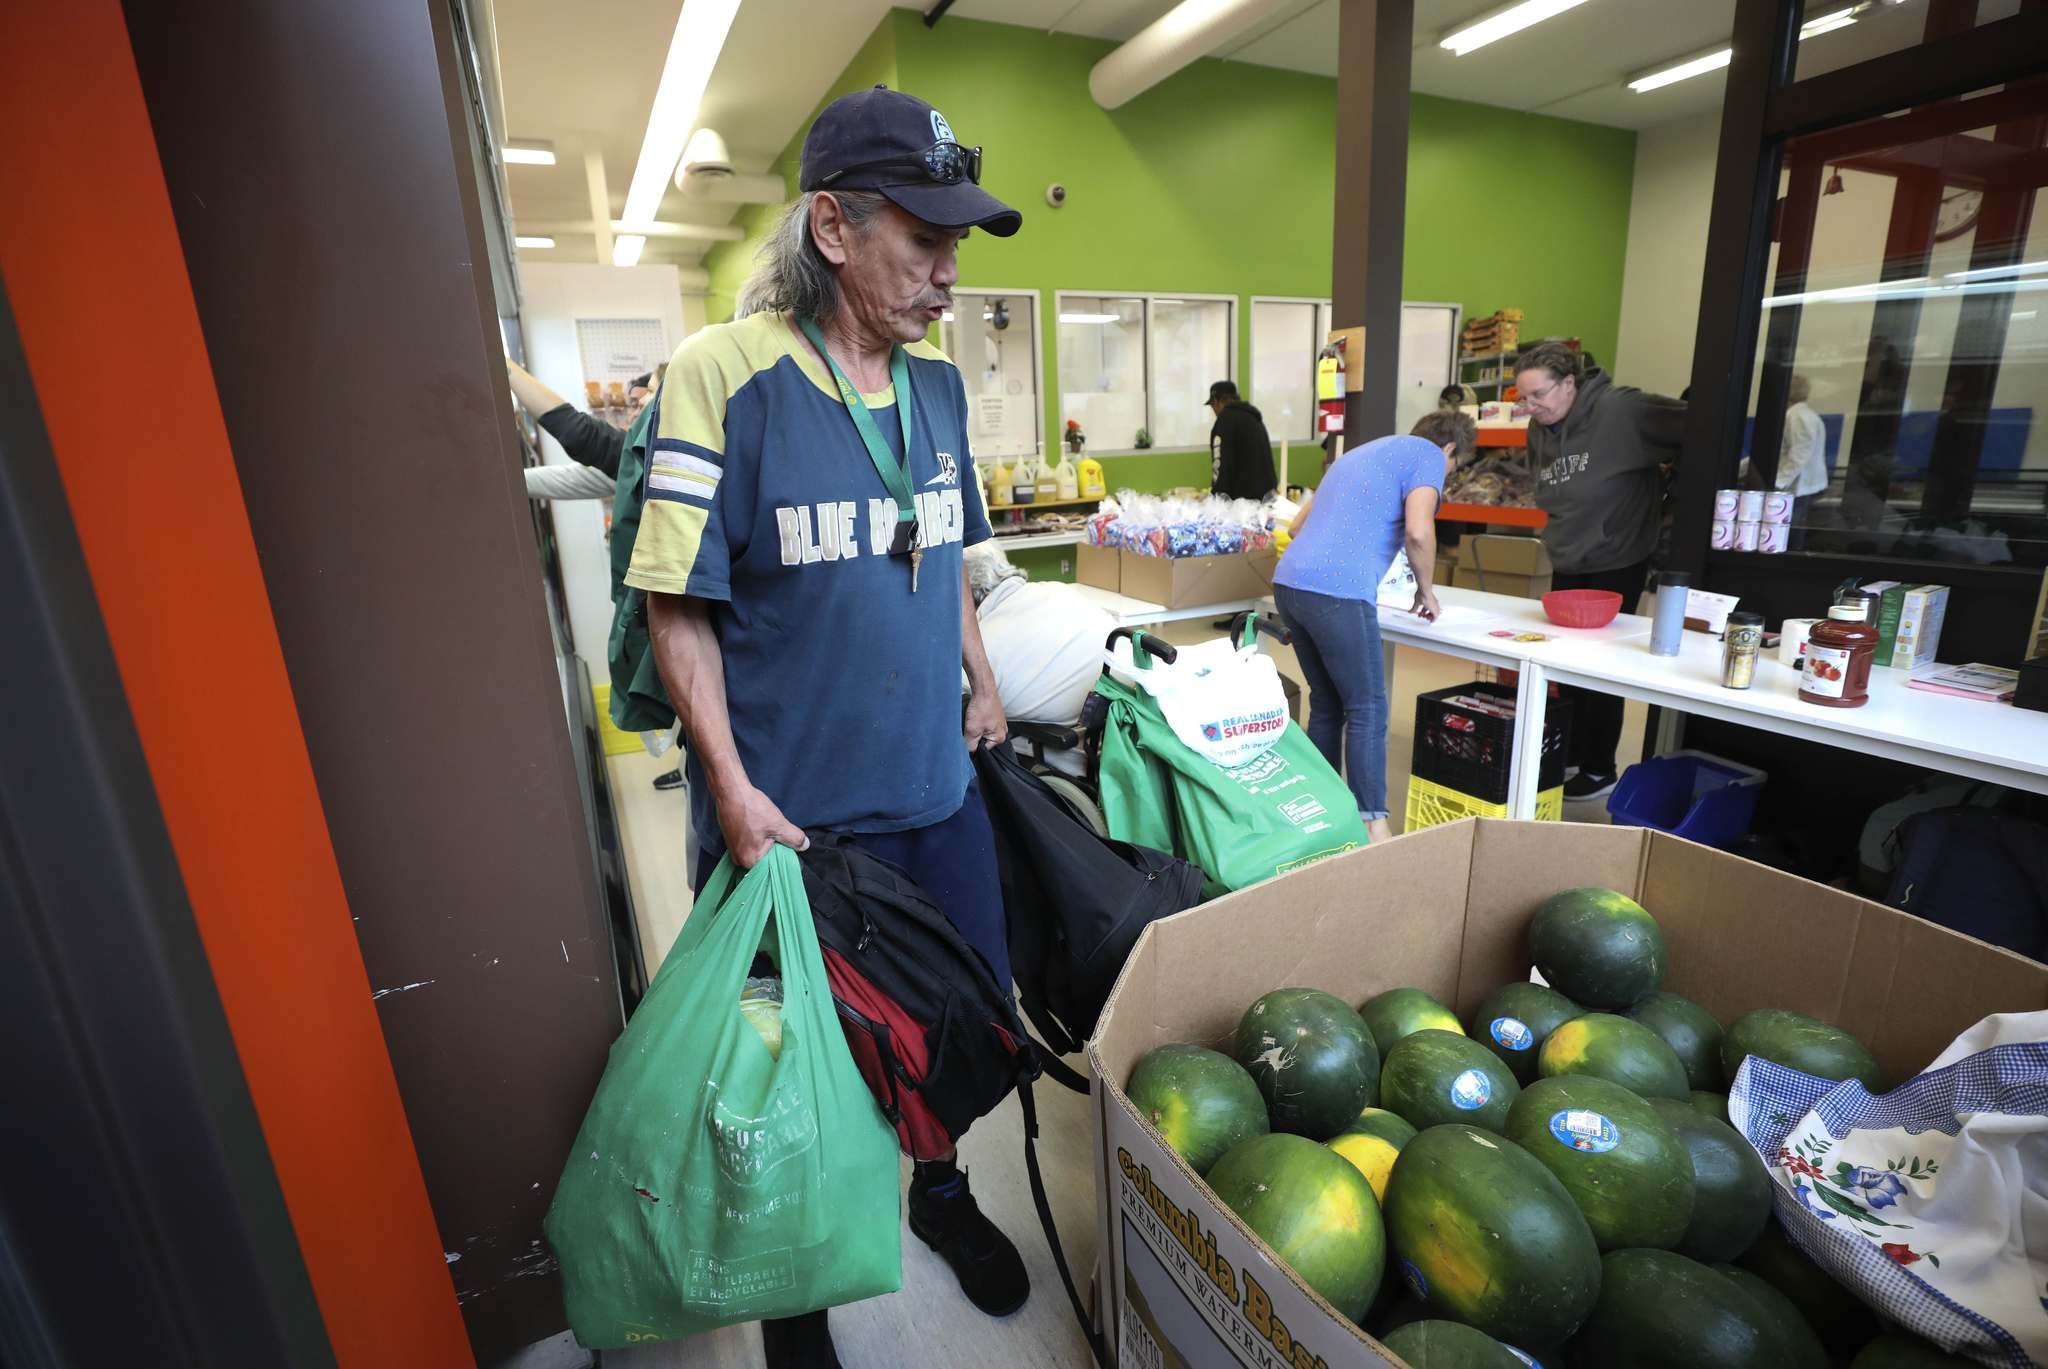 William Van Derbos carries groceries from the Main Street Project weekly food bank that includes supplies from Winnipeg Harvest. (Ruth Bonneville / Winnipeg Free Press)</p>